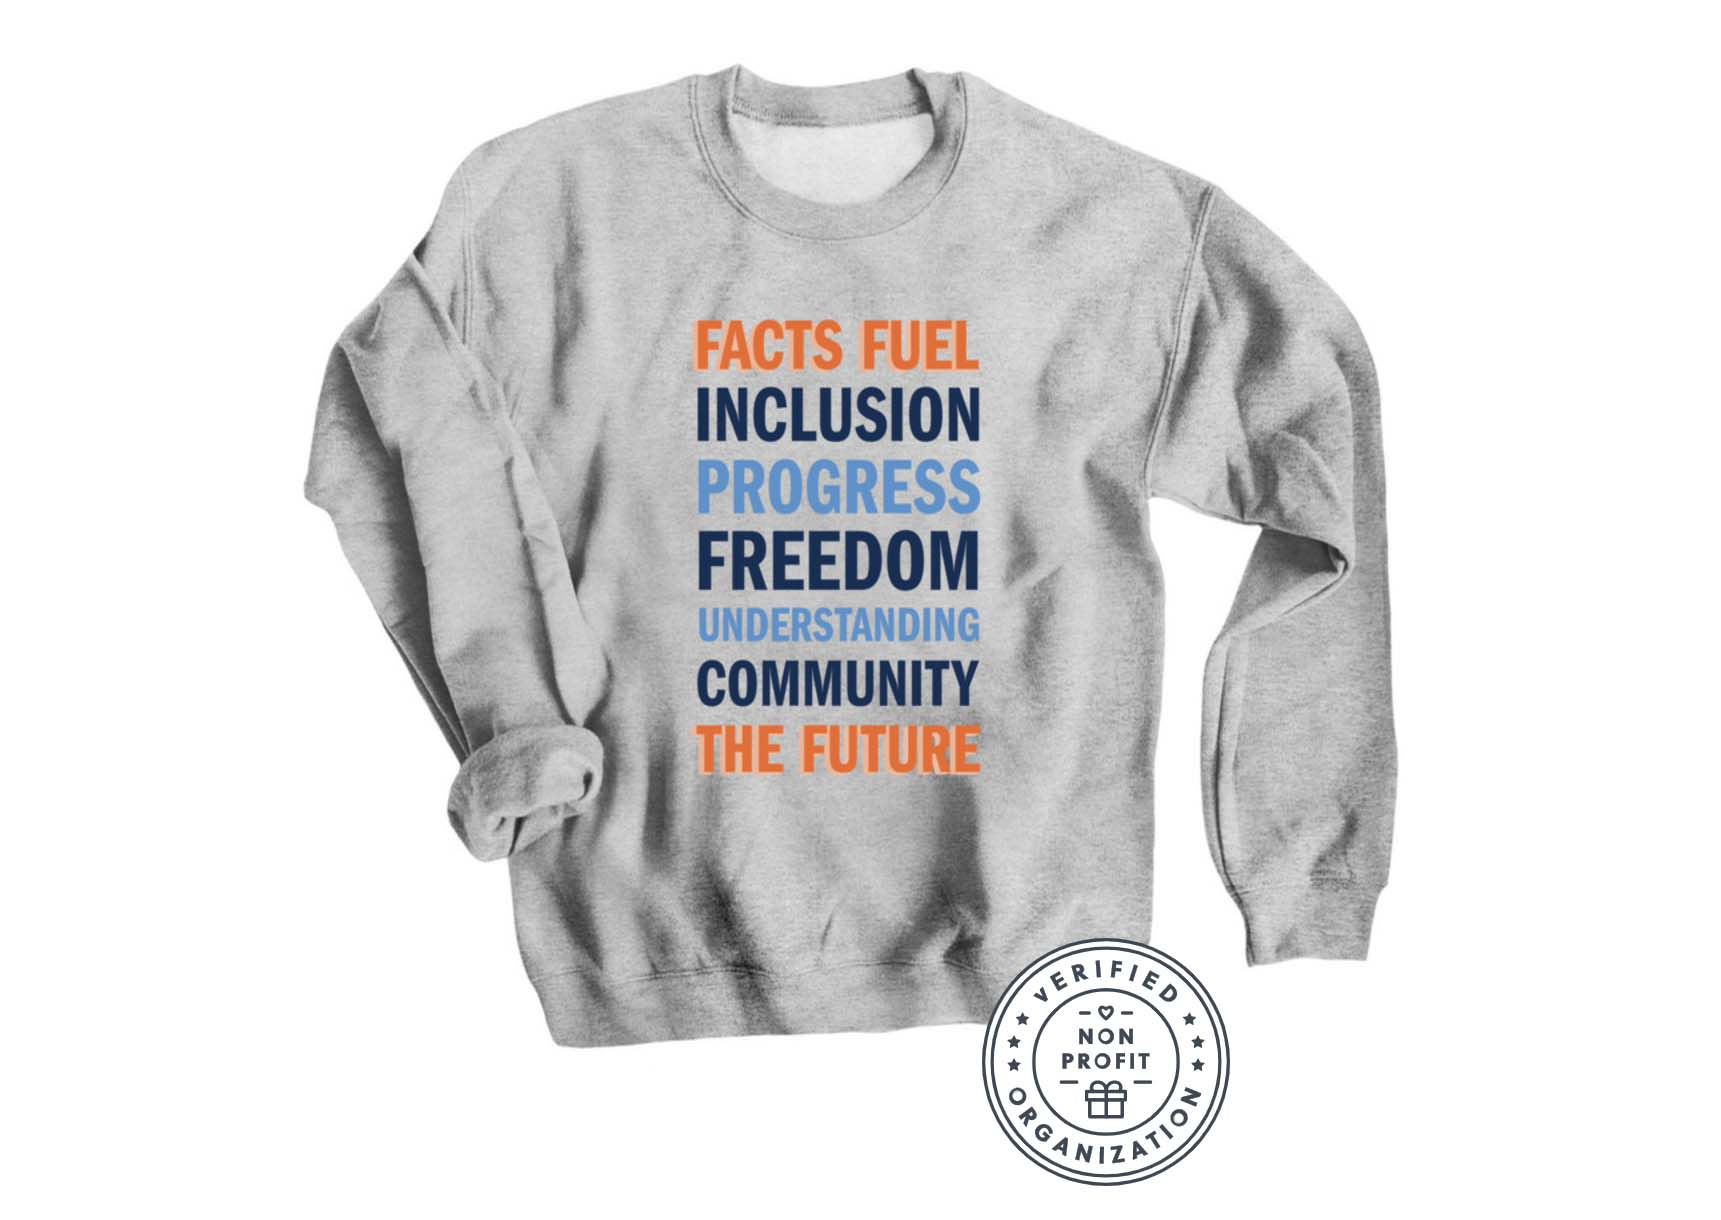 A heather gray sweatshirt that reads FACTS FUEL INCLUSION PROGRESS FREEDOM UNDERSTANDING COMMUNITY THE FUTURE